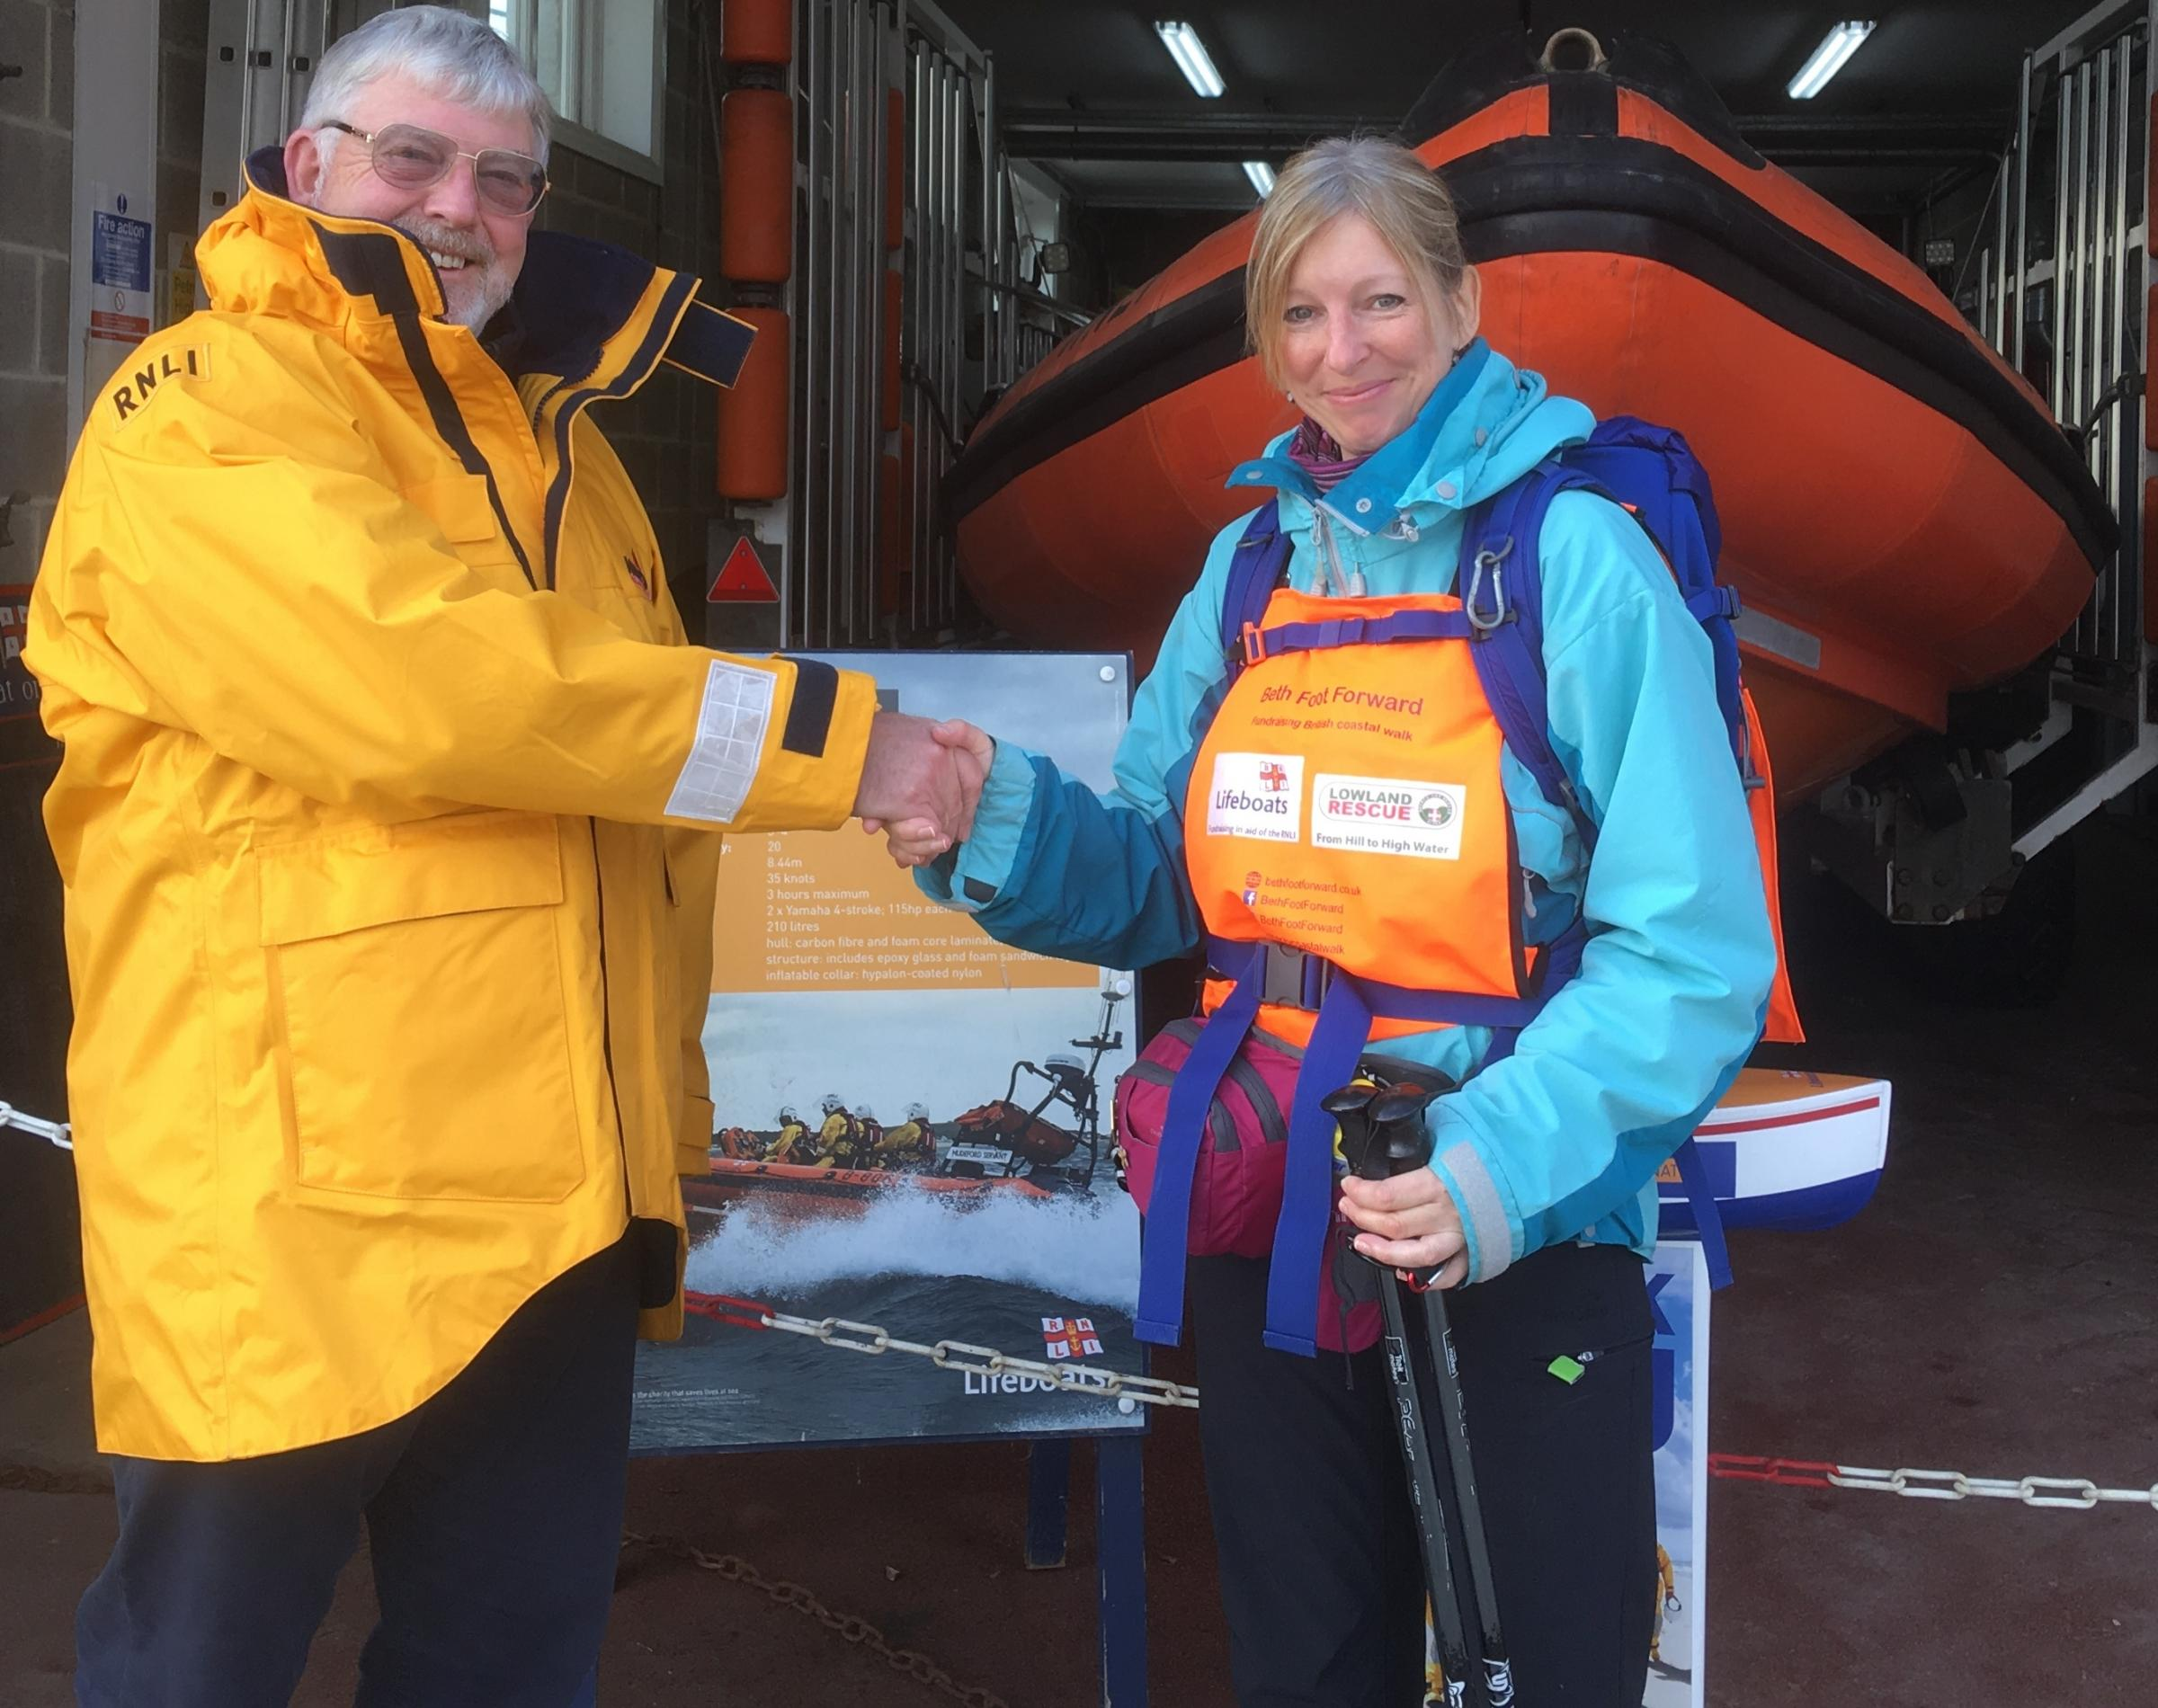 TREK: Walker Beth Wilkes was welcomed to Lyme Regis Lifeboat Stationby operations manager Nick Marks